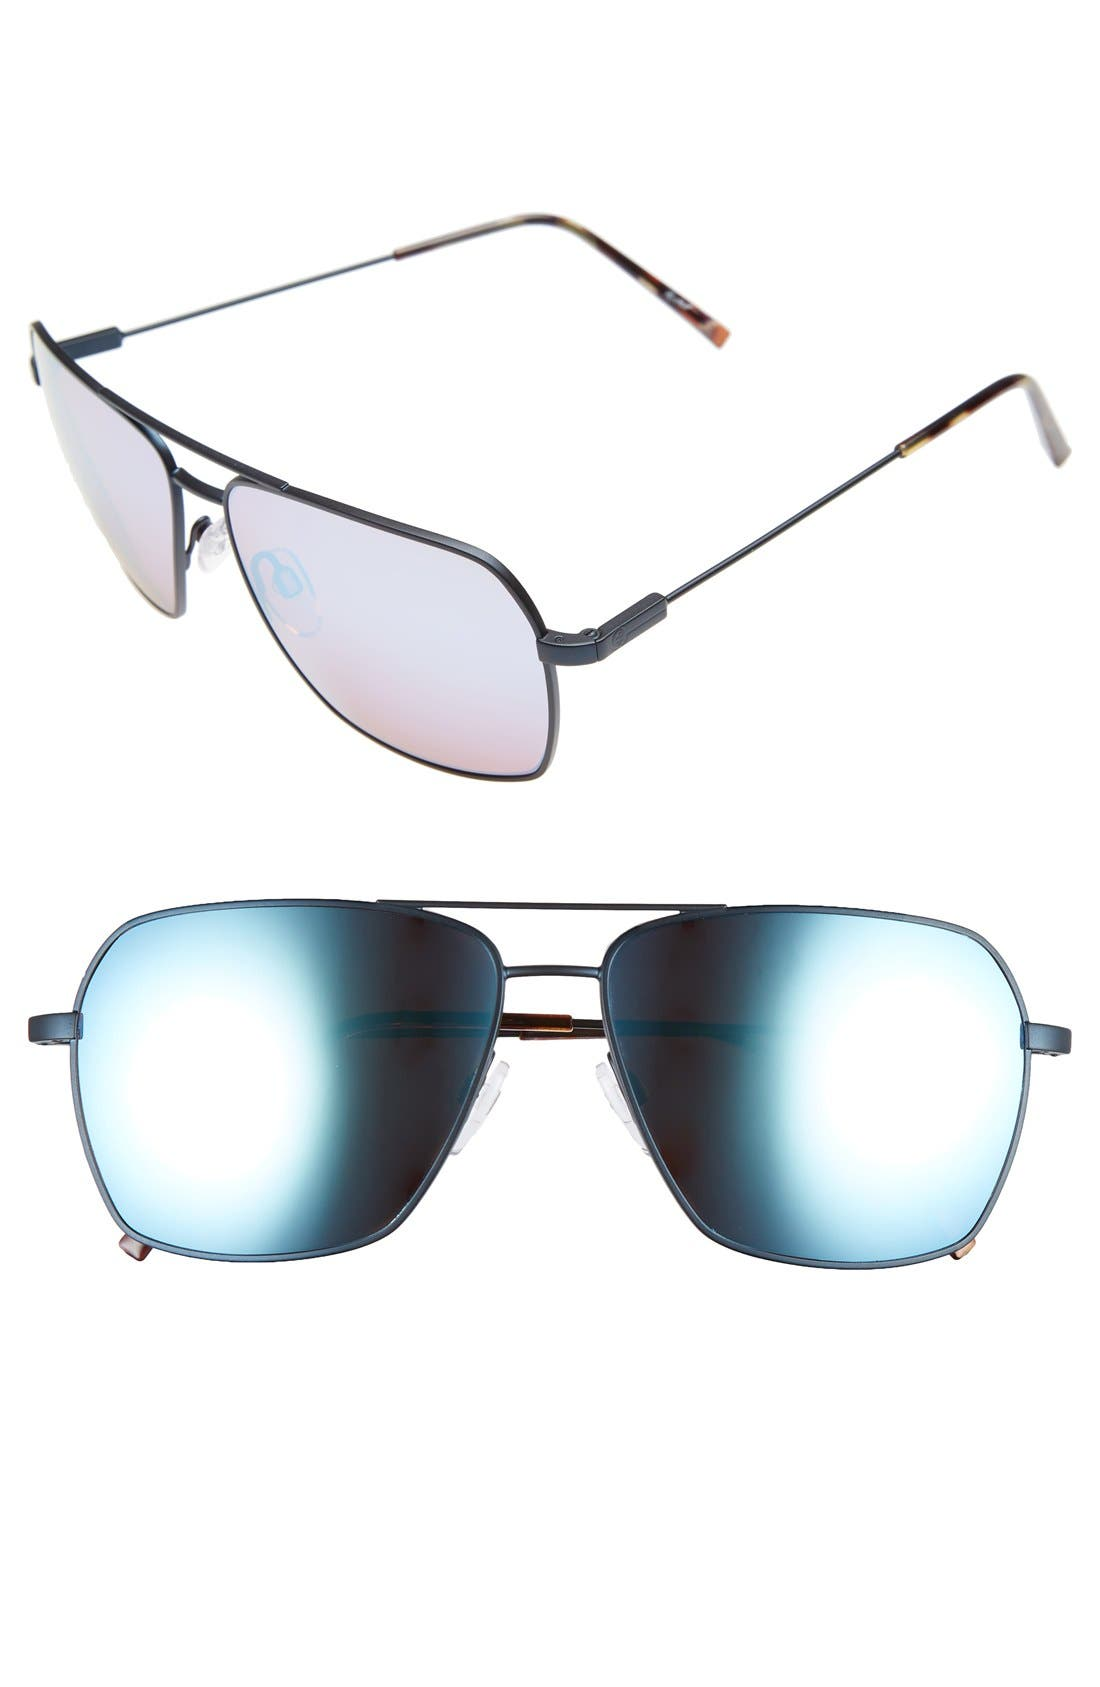 ELECTRIC AV2 59mm Navigator Sunglasses